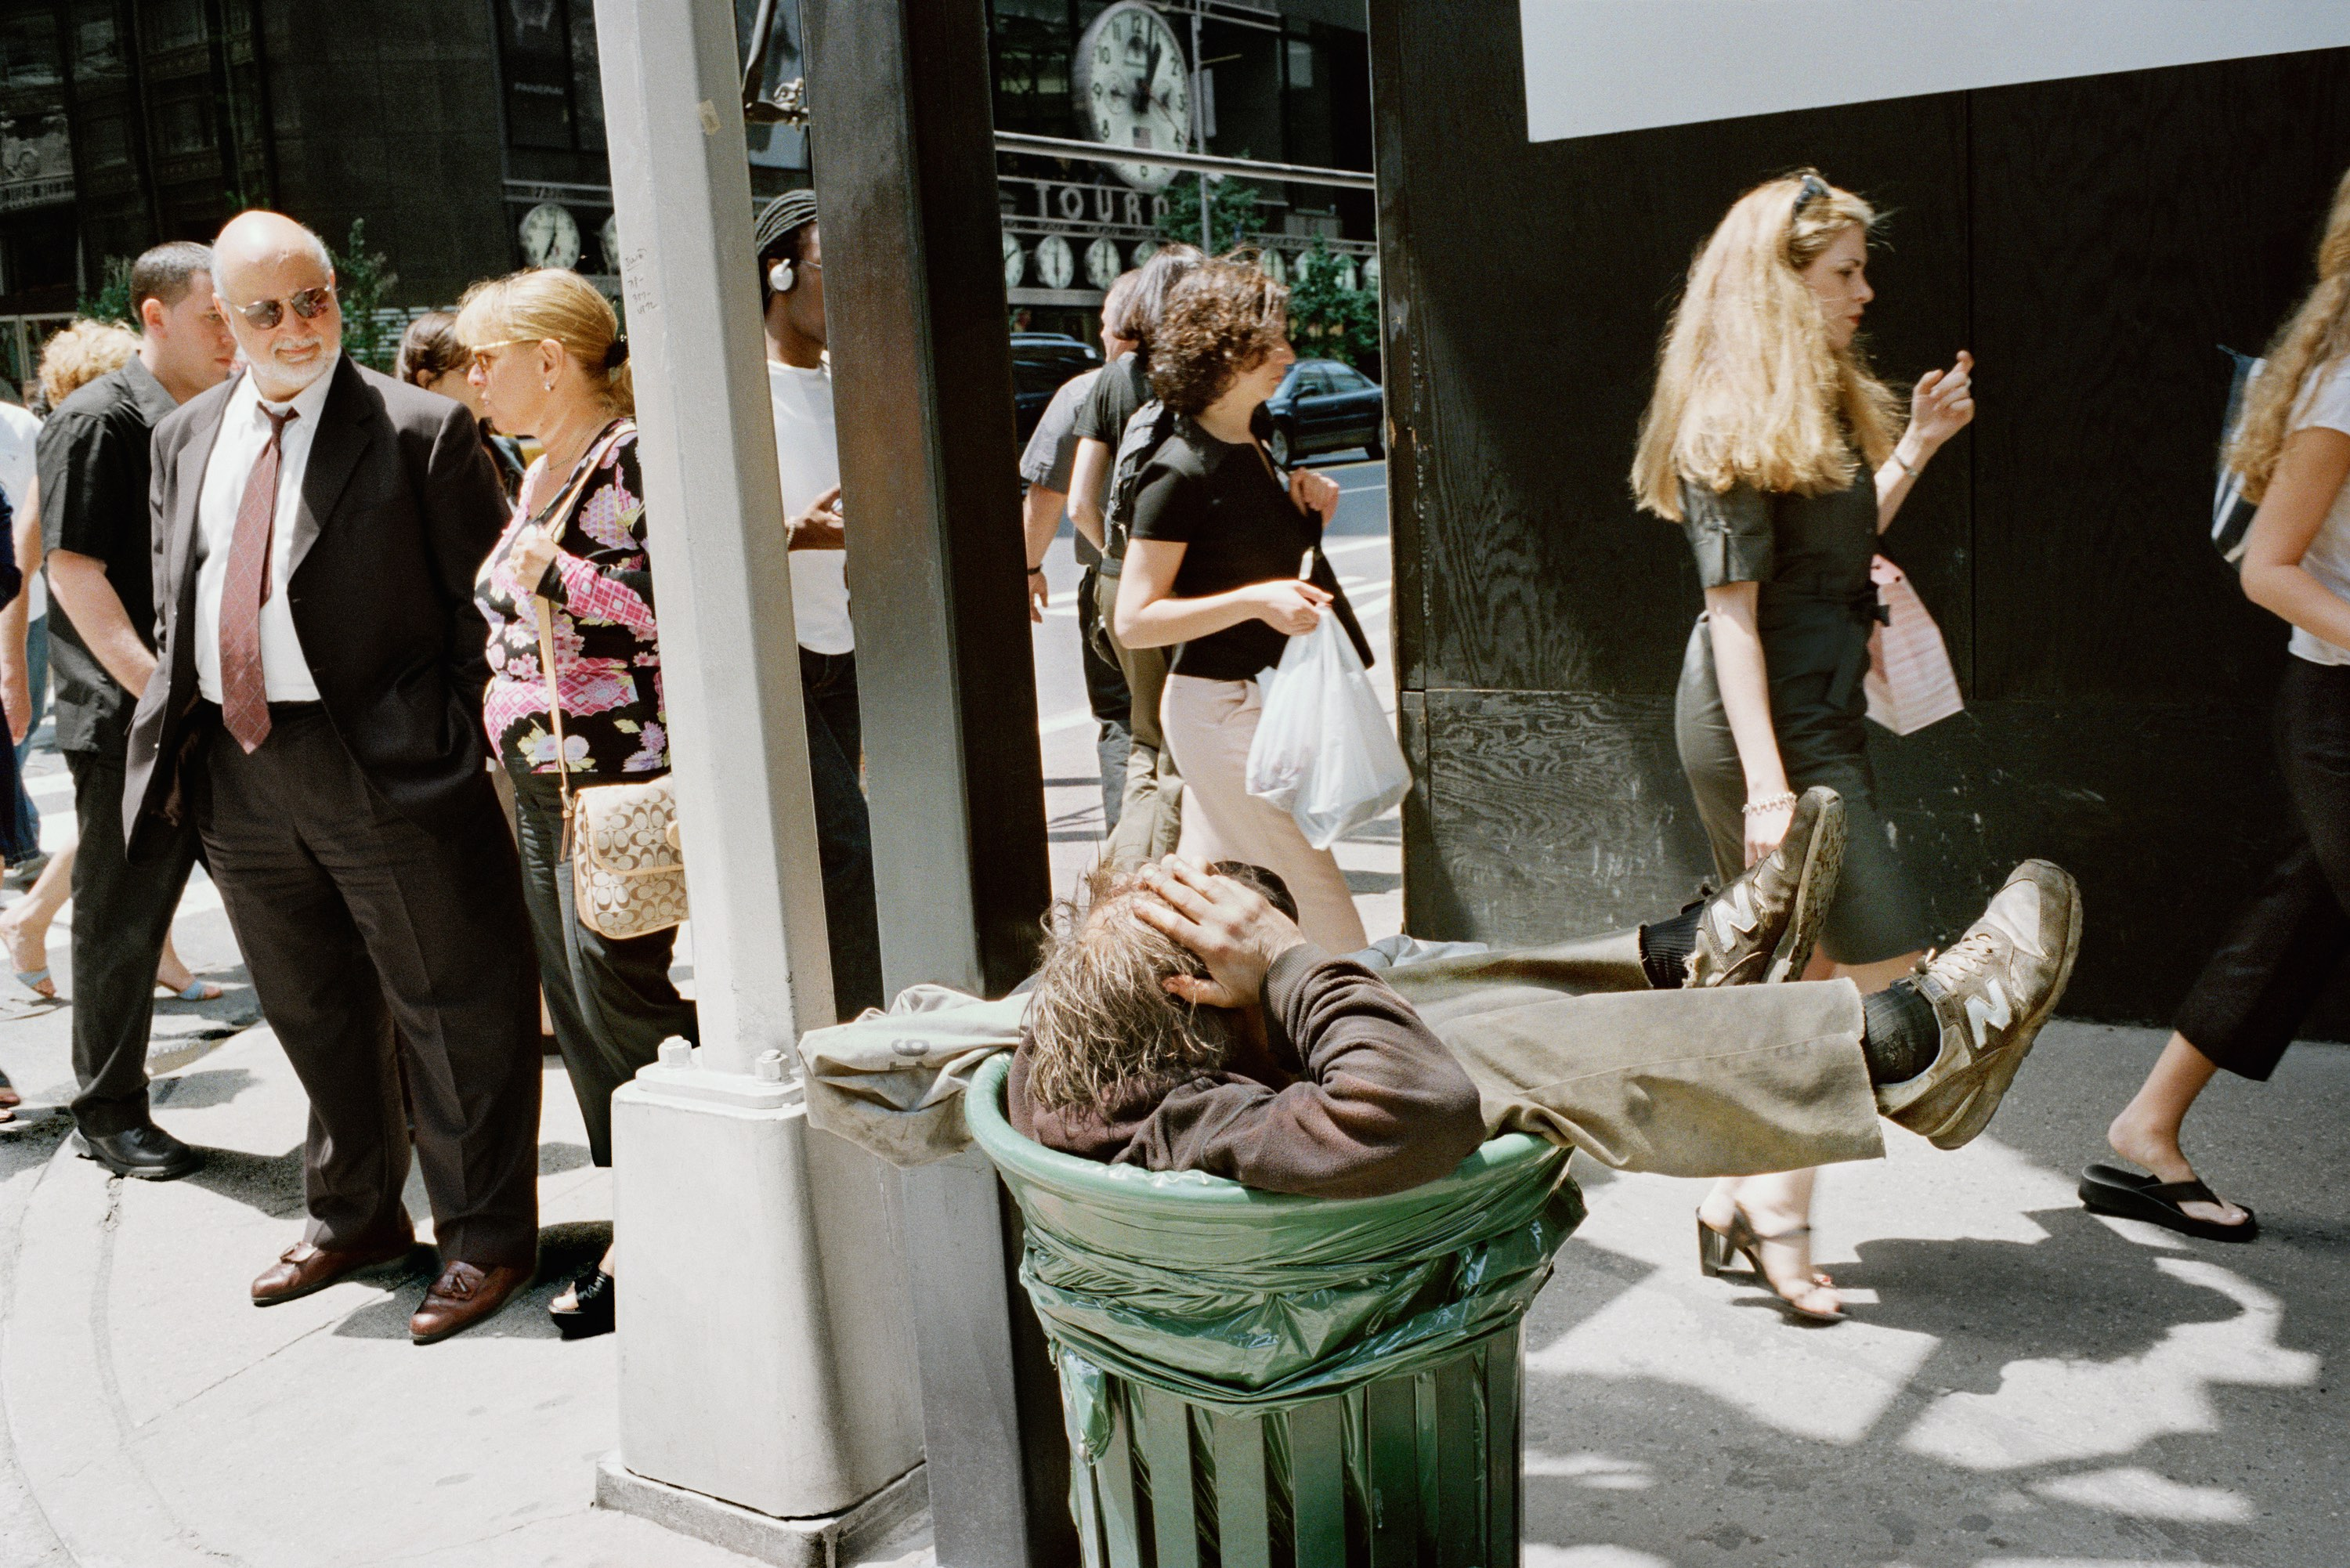 Noel Camardo, New York, New York, 2002. Courtesy of Noel Camardo.